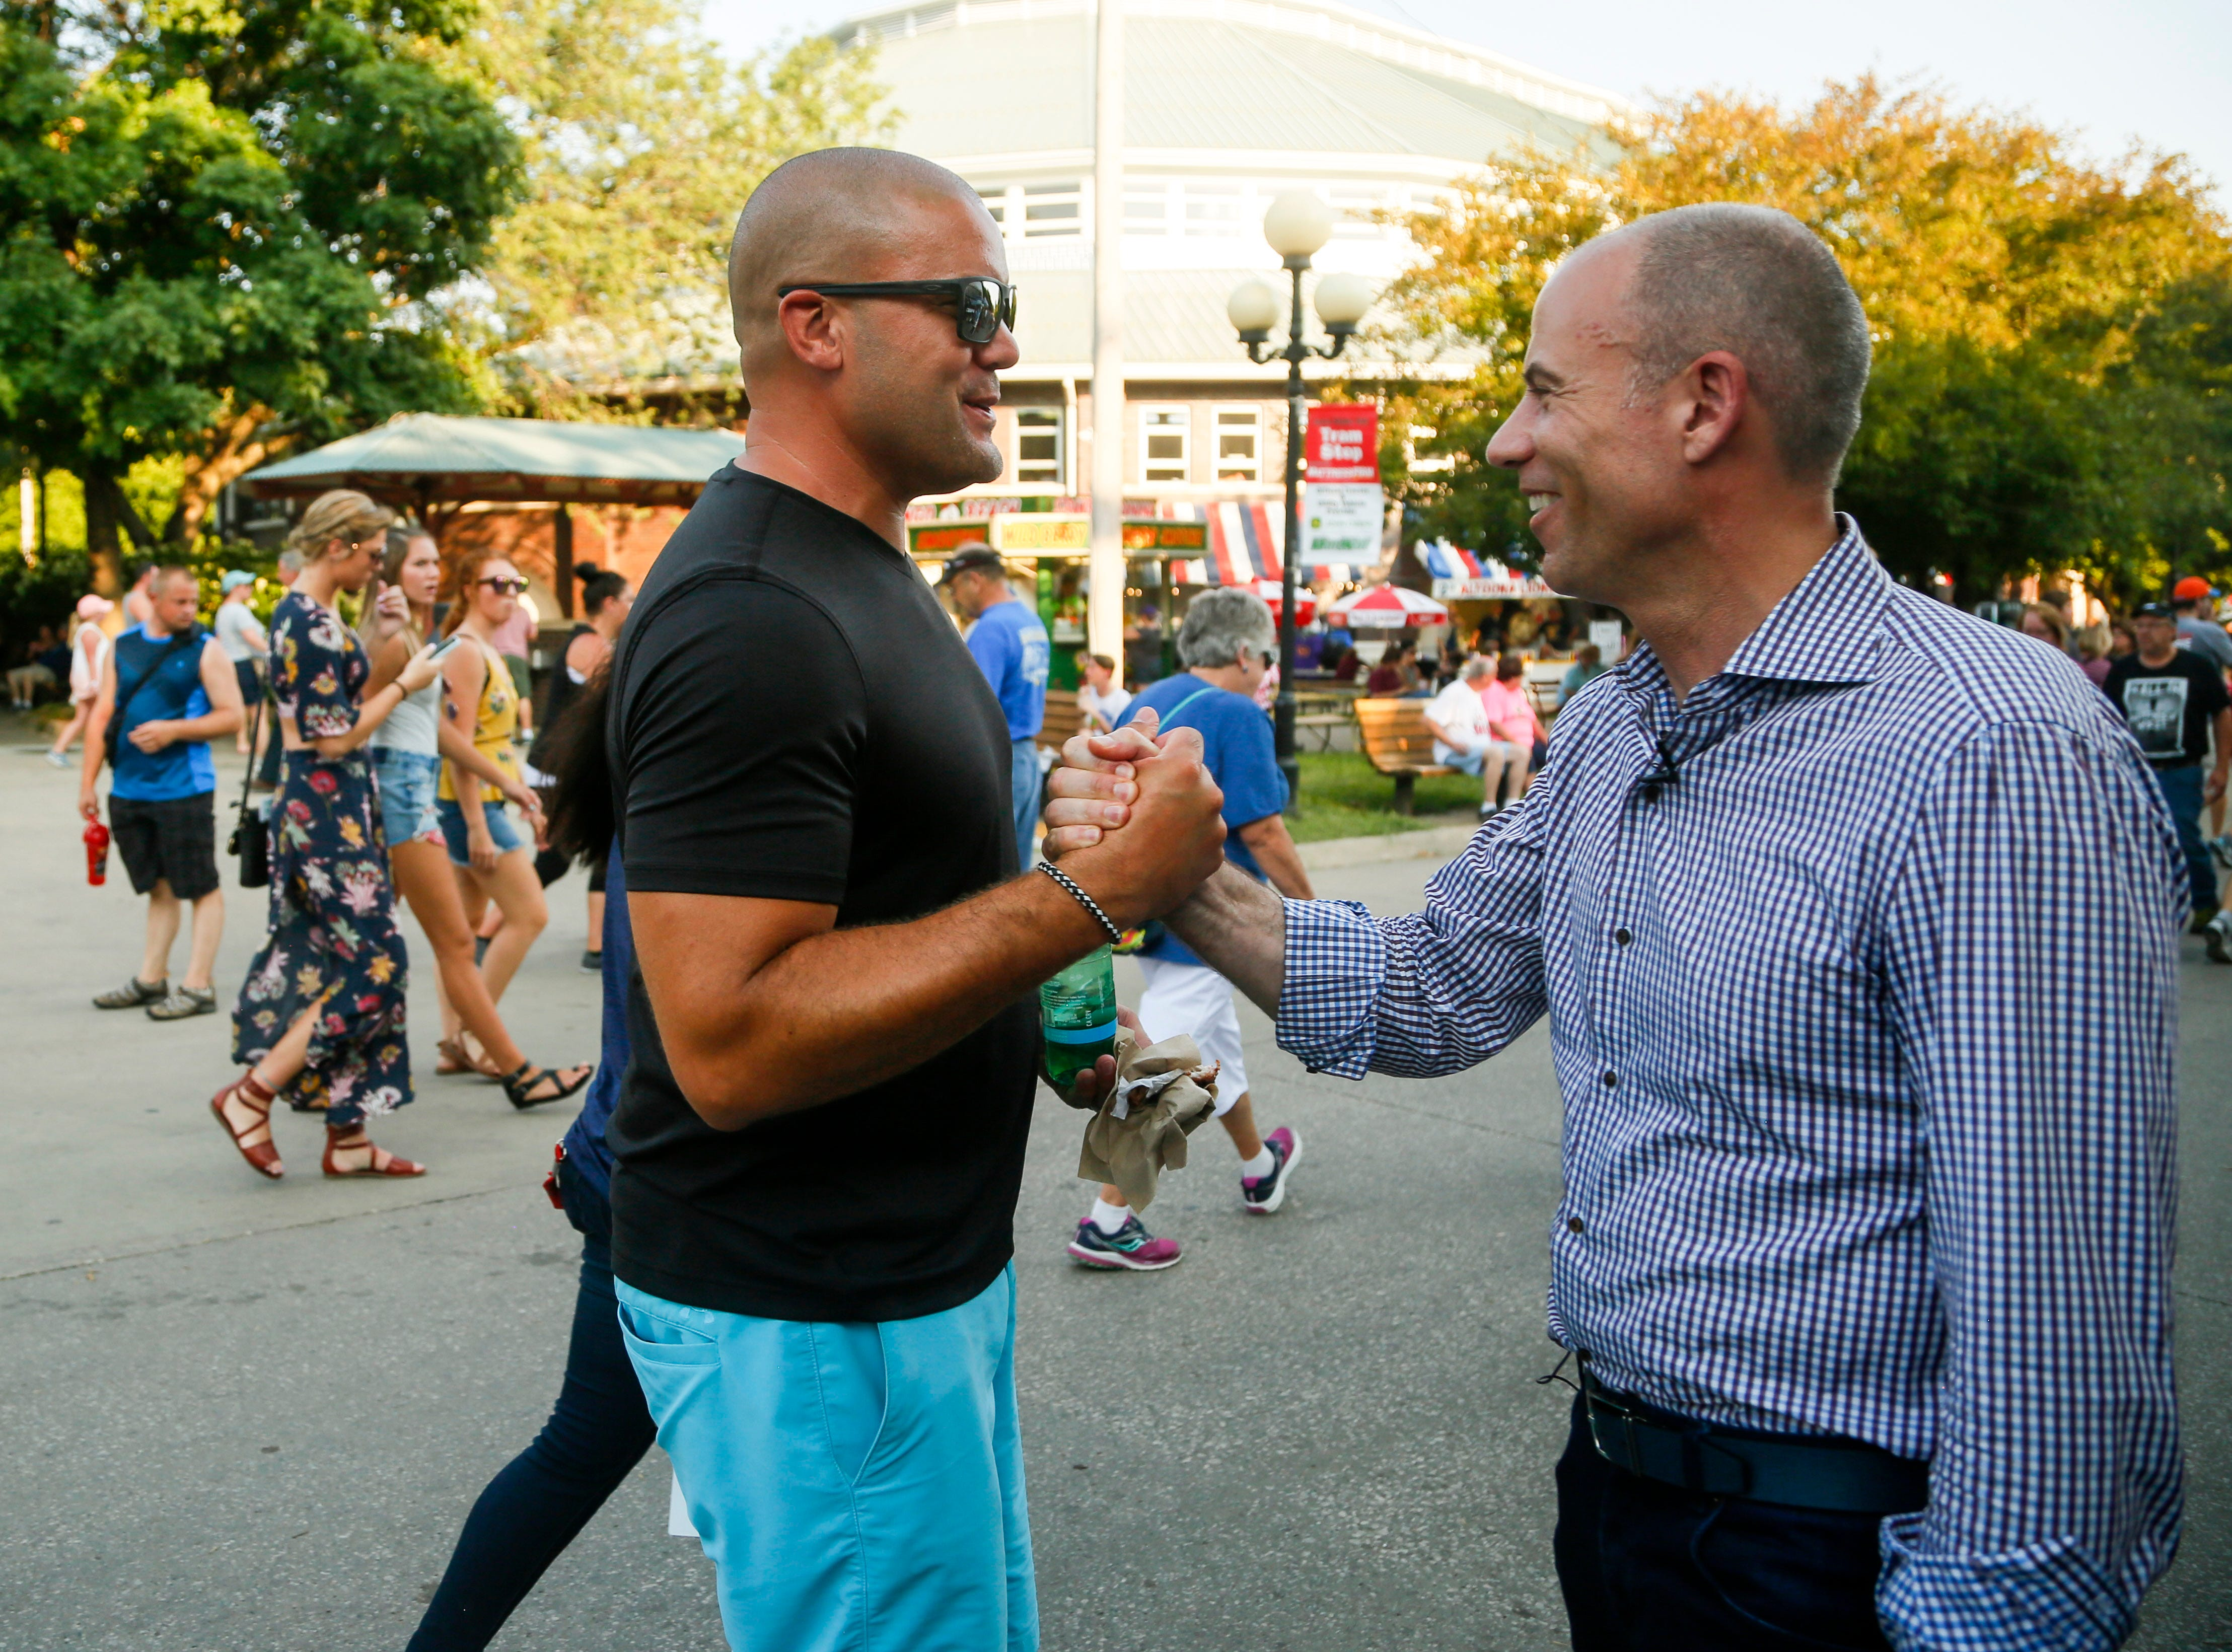 Michael Avenatti, the lawyer known for representing adult film actress Stormy Daniels in her case against President  Donald Trump shakes hands at the Iowa State Fair Thursday, Aug. 9, 2018.